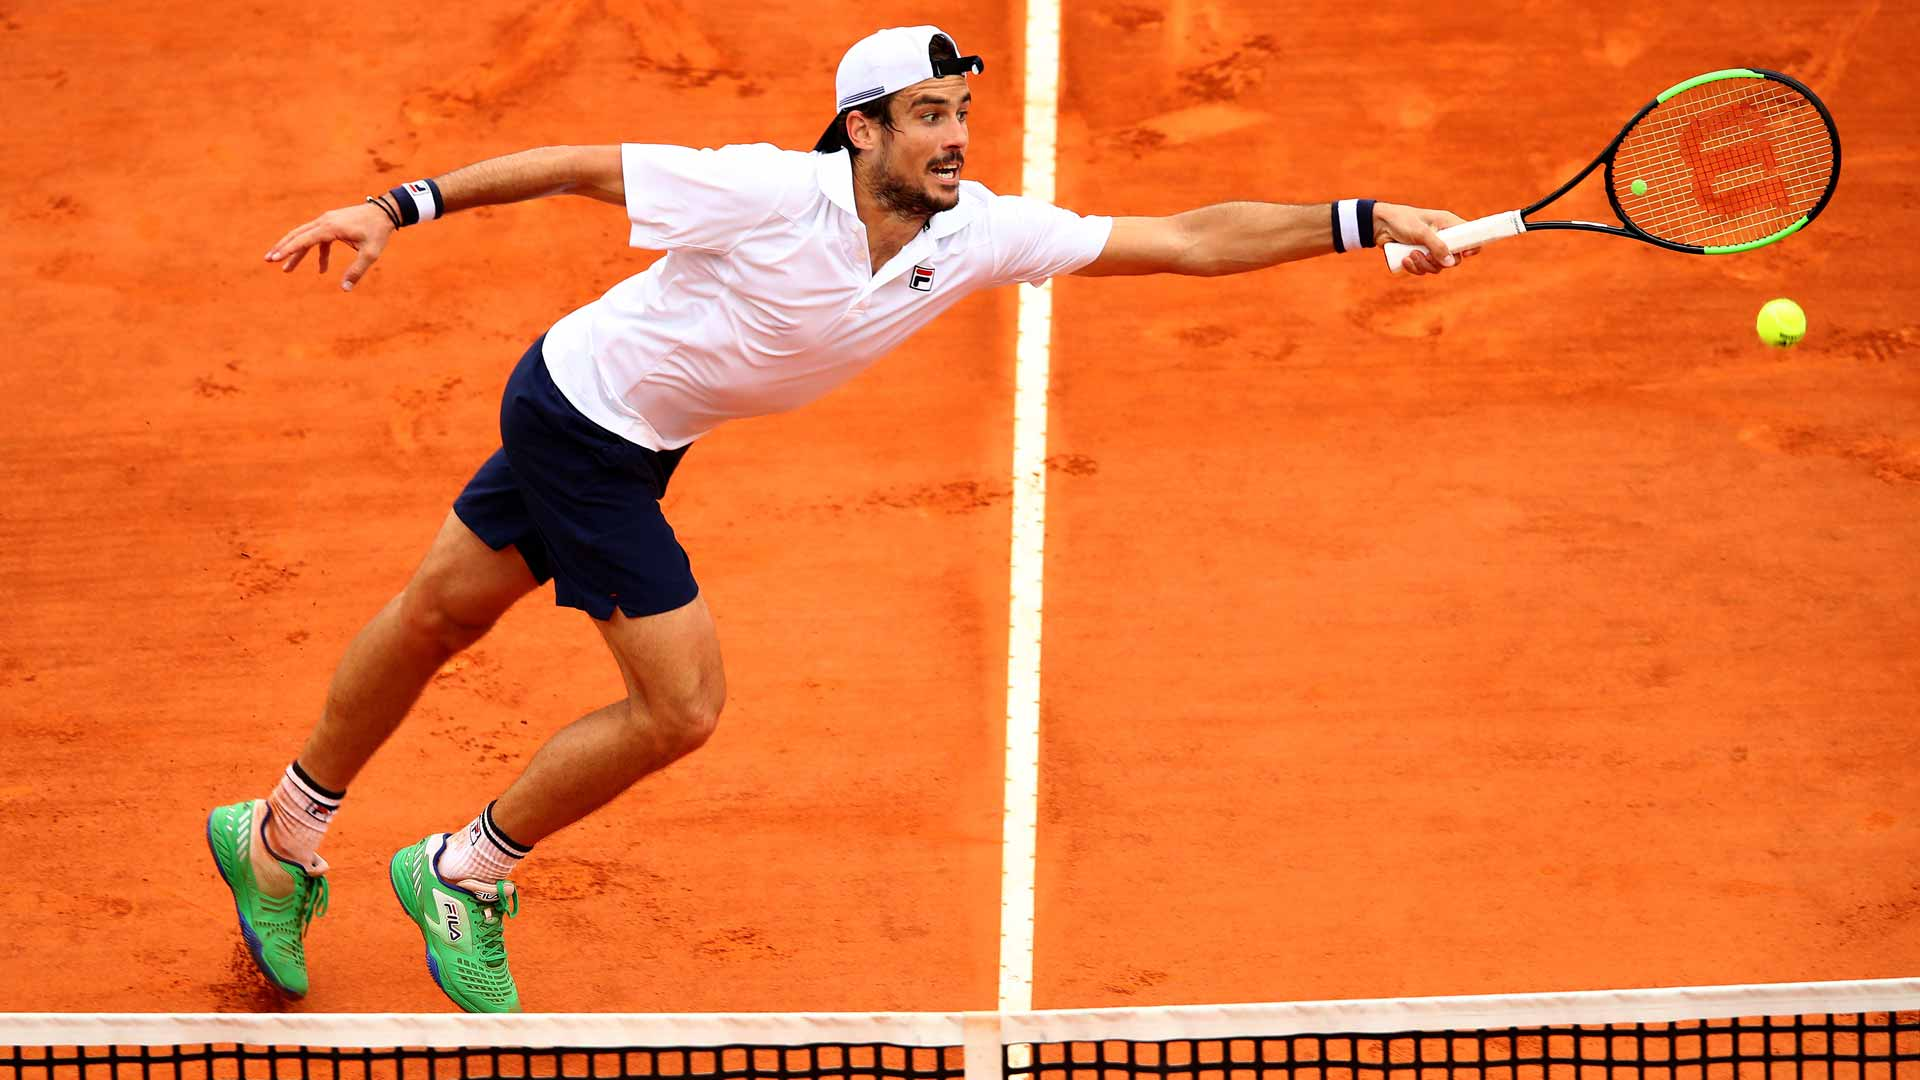 Guido Pella hits a volley against Marin Cilic in Monte-Carlo